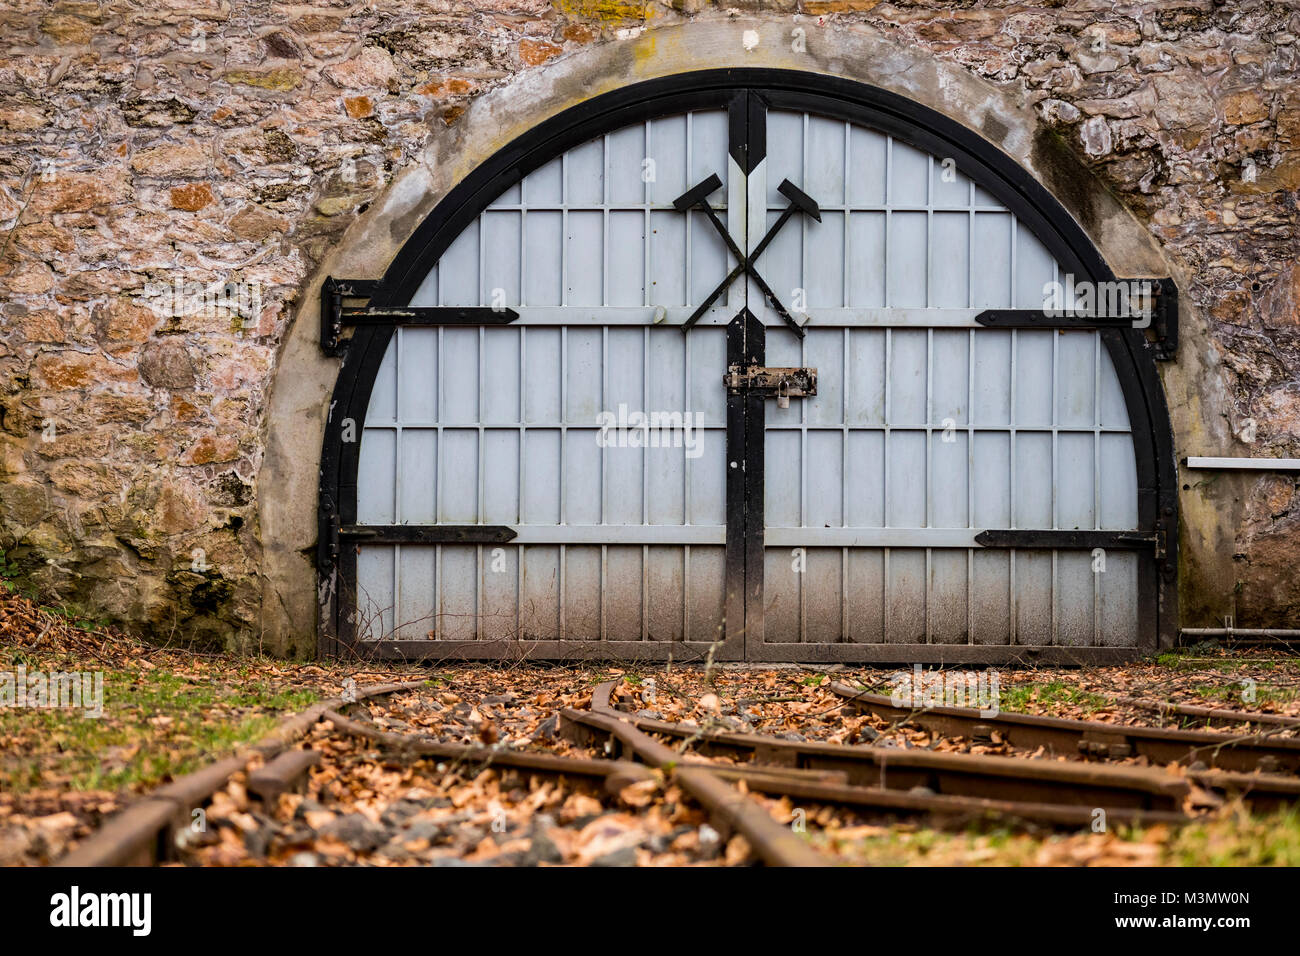 Mine entrance, gate, visitor's mine Grube Fortuna, Solms, Germany - Stock Image